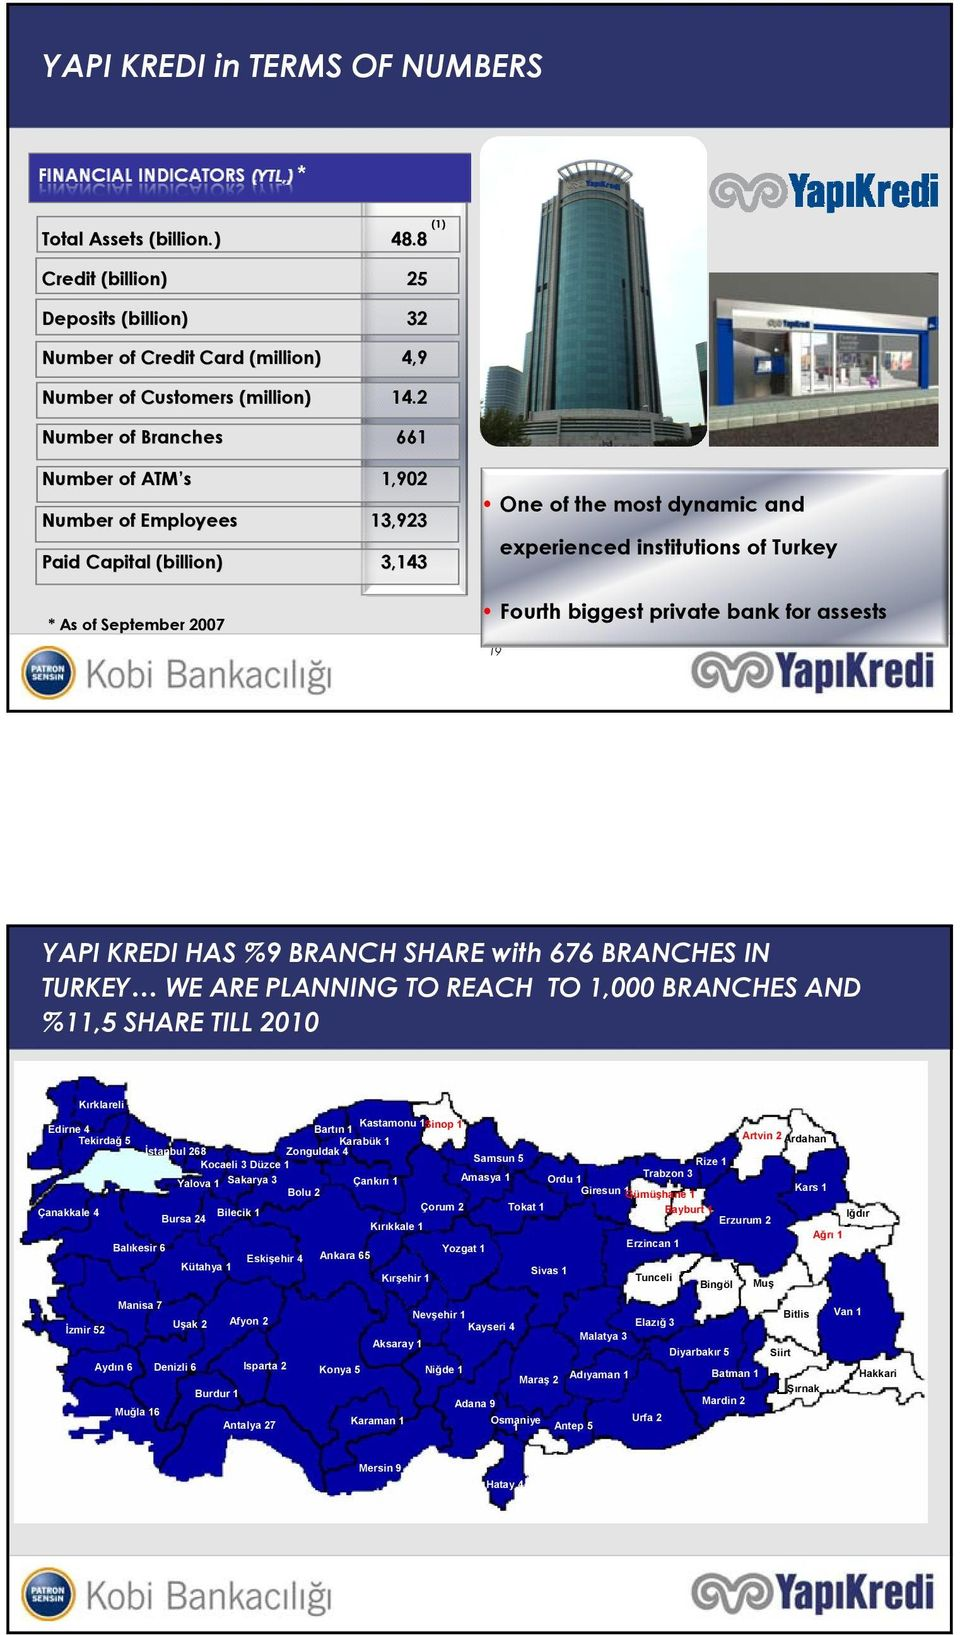 2 Number of Branches 661 Number of ATM ATM s (1) 1,902 Number of Employees One of the most dynamic and 13,923 Paid Capital (billion) billion) experienced institutions of Turkey 3,143 Fourth biggest